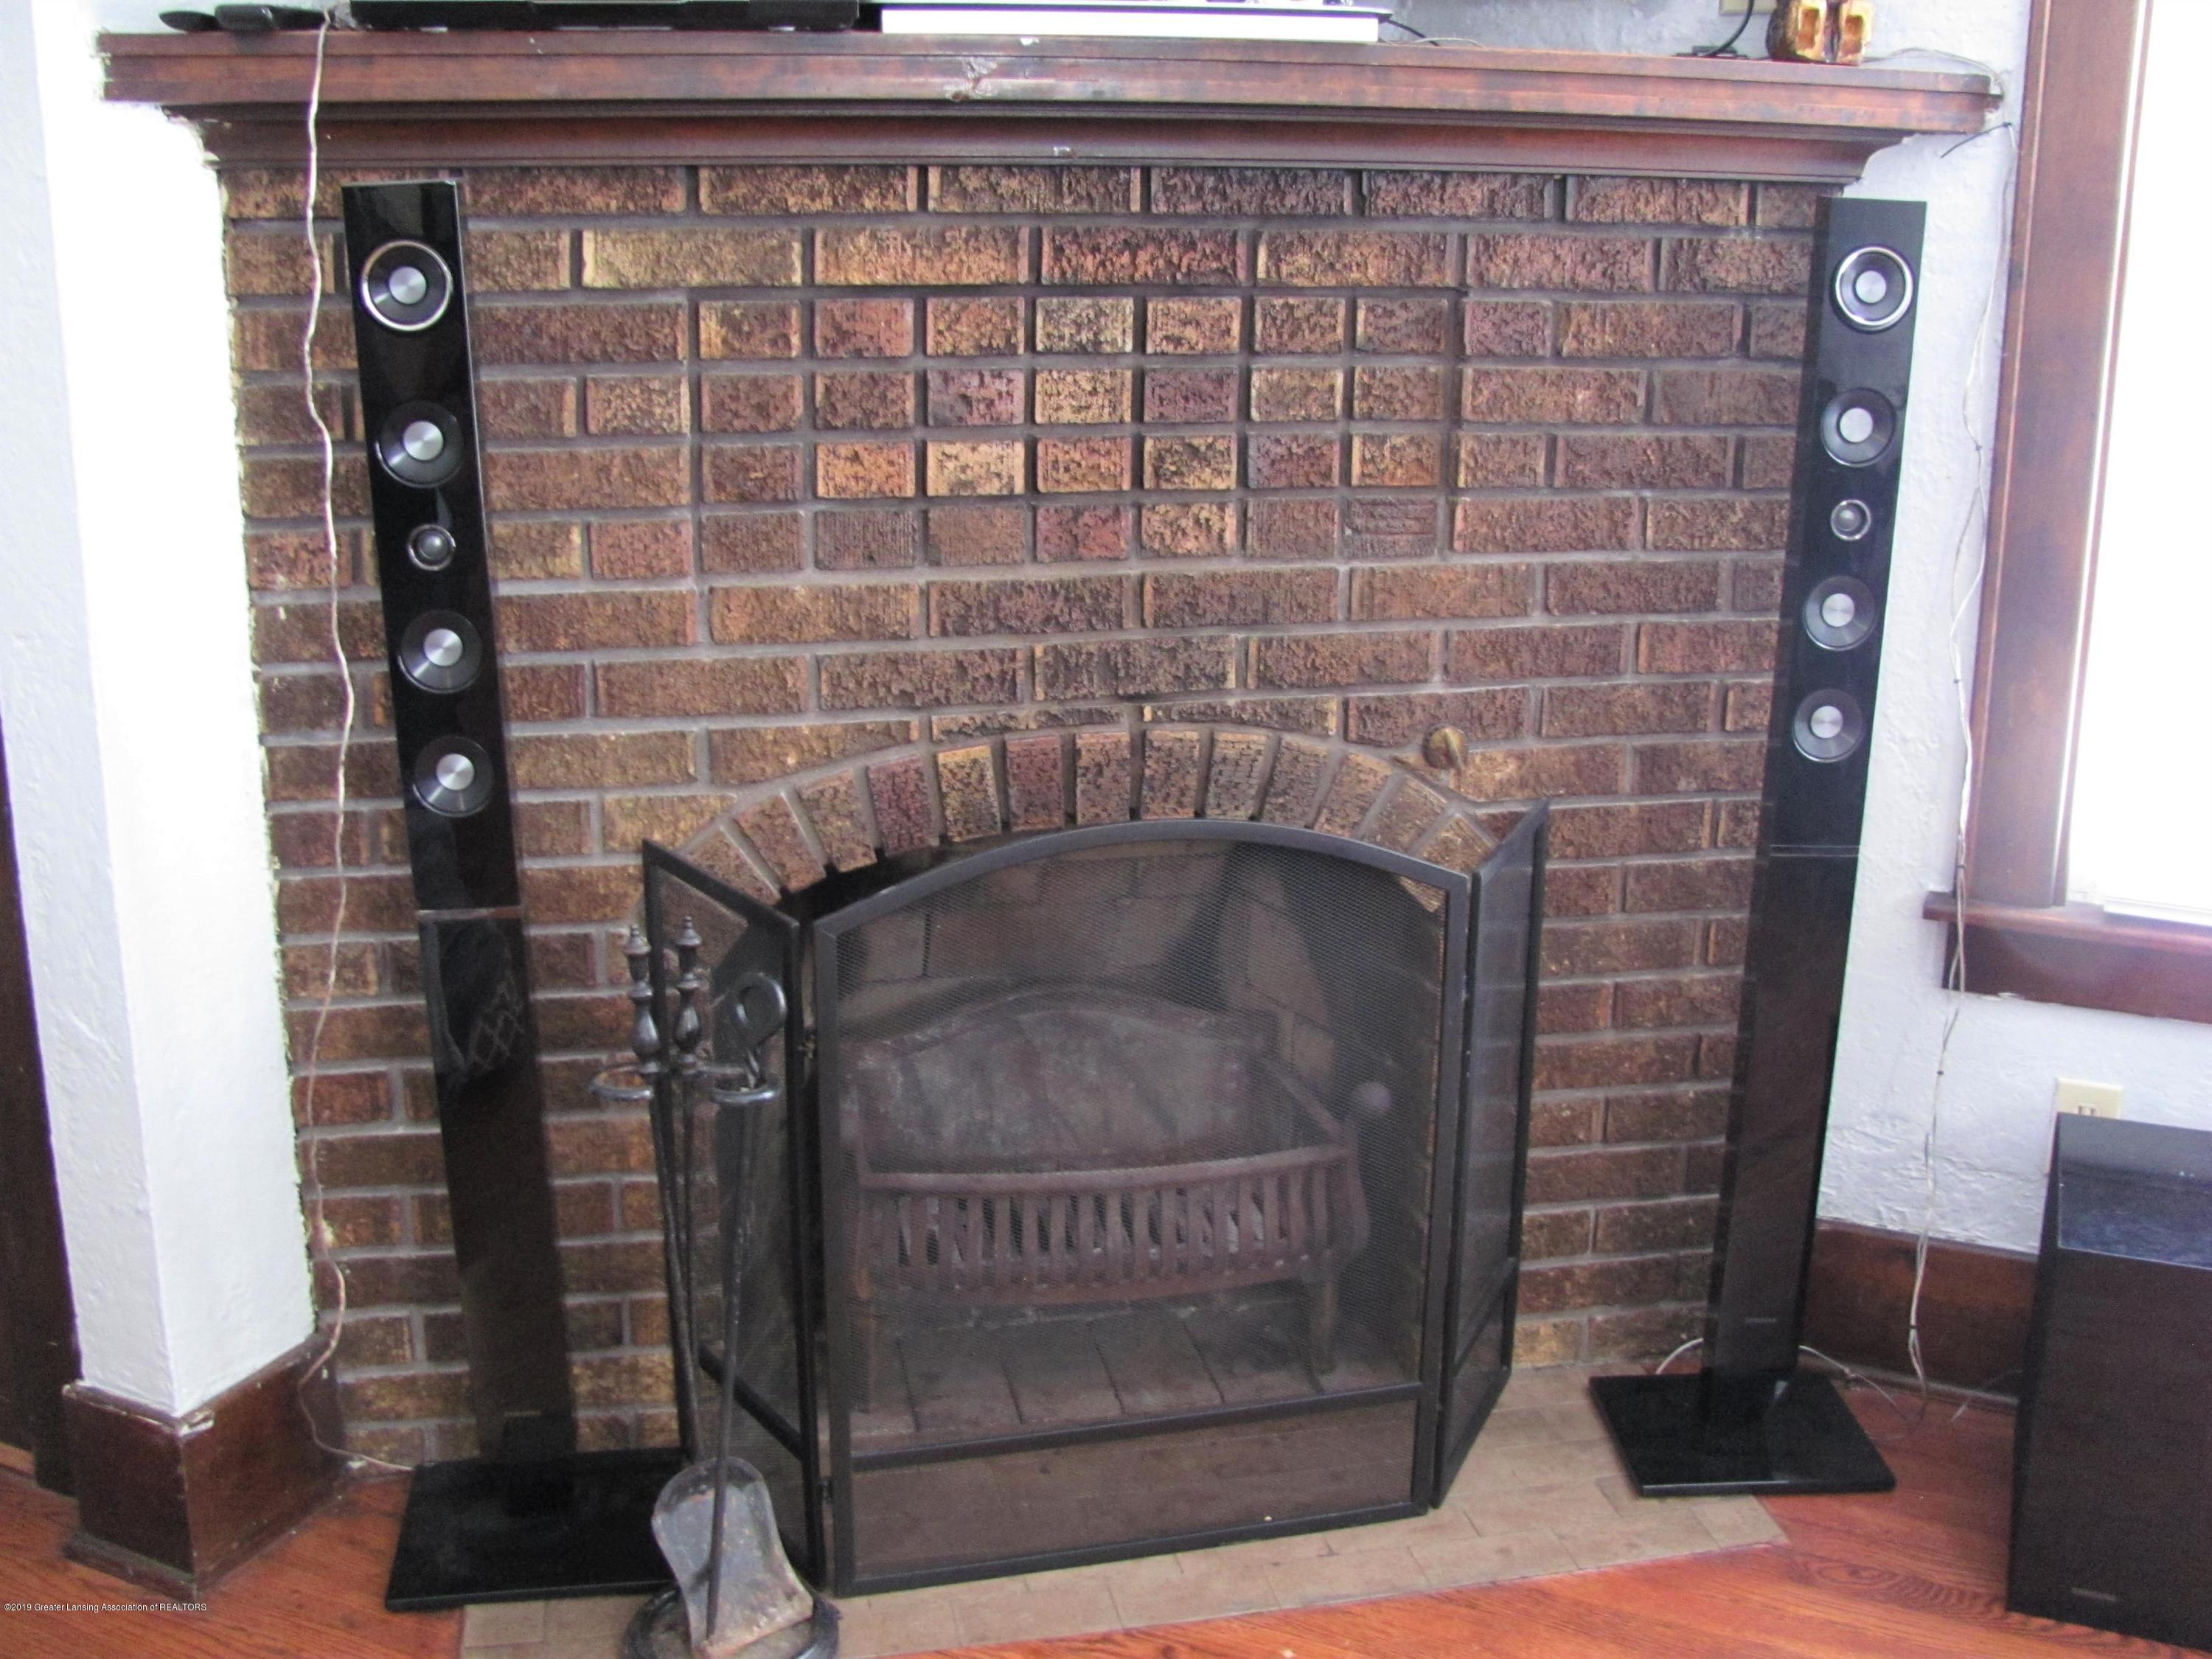 629 N Fairview Ave - Fireplace - 14